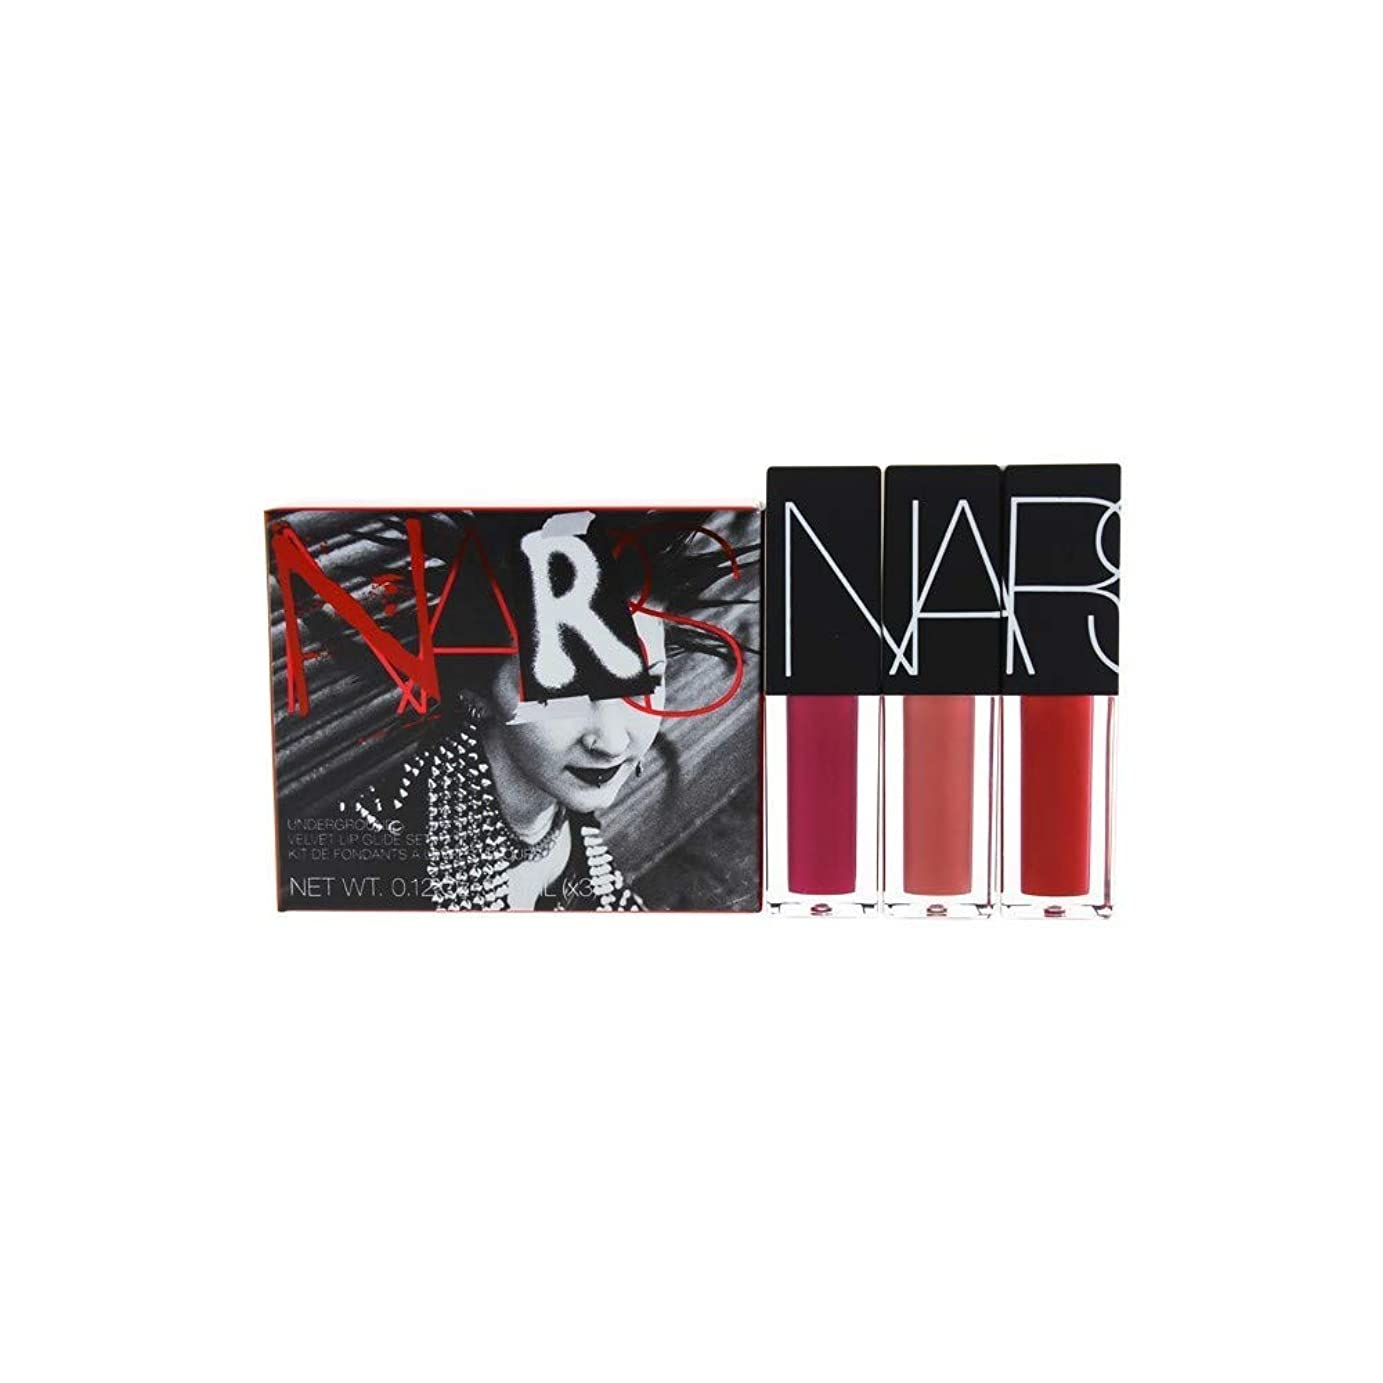 幹ブラウズサスペンドNars Underground Velvet Lip Glide Set By Nars for Women - 3 X 0.12 Oz Lipstick Banshee, Vandal, Camden Girls, 3count [並行輸入品]